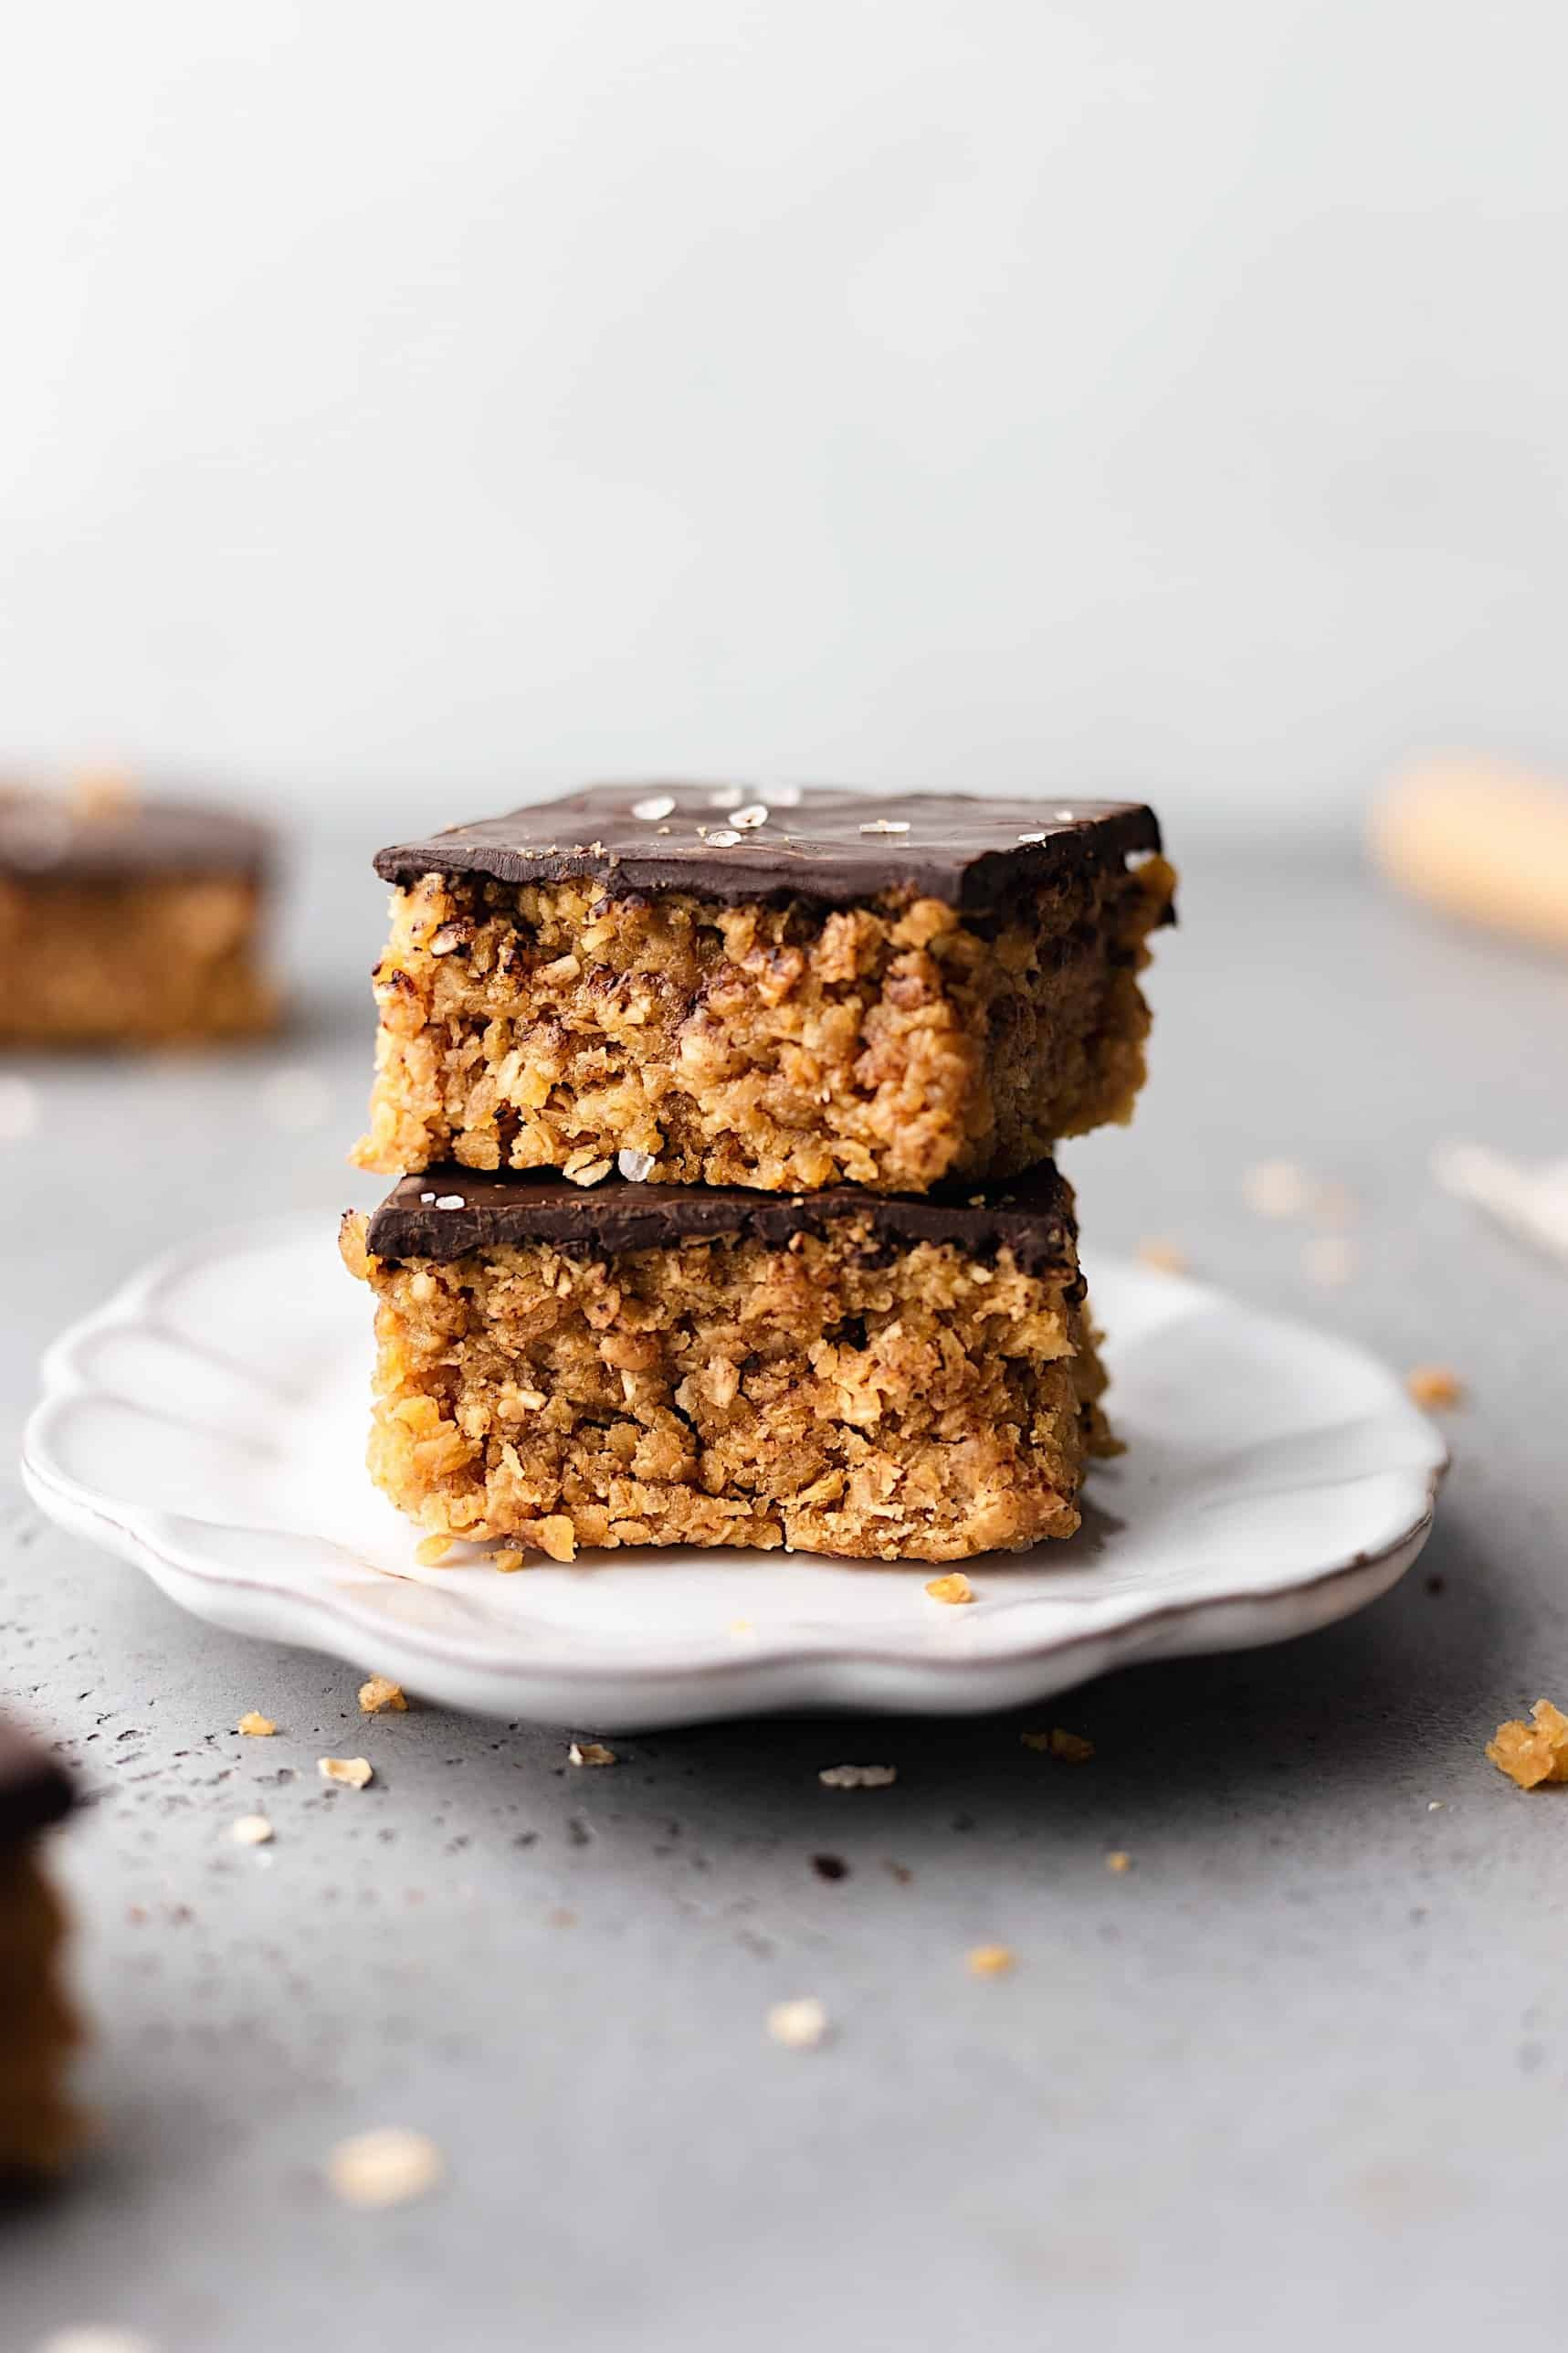 Vanilla Coconut And Chocolate Flapjacks Cupful Of Kale Recipe In 2020 Chocolate Flapjacks Chocolate Recipes Vegan Dessert Recipes